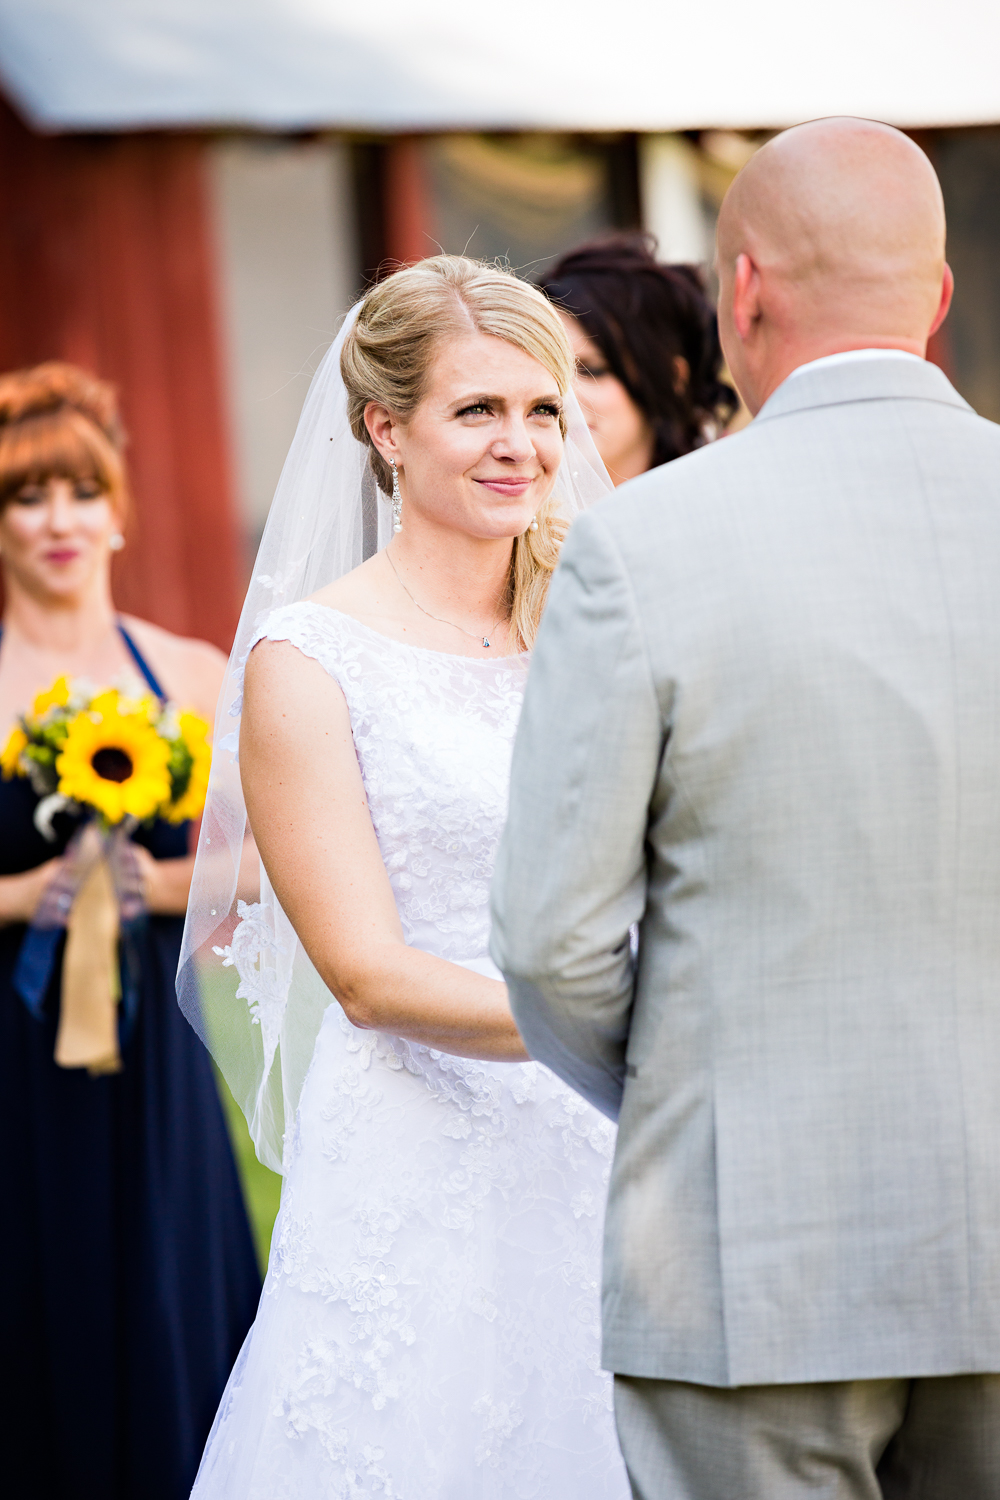 bozeman-montana-wedding-roys-barn-bride-says-vows.jpg